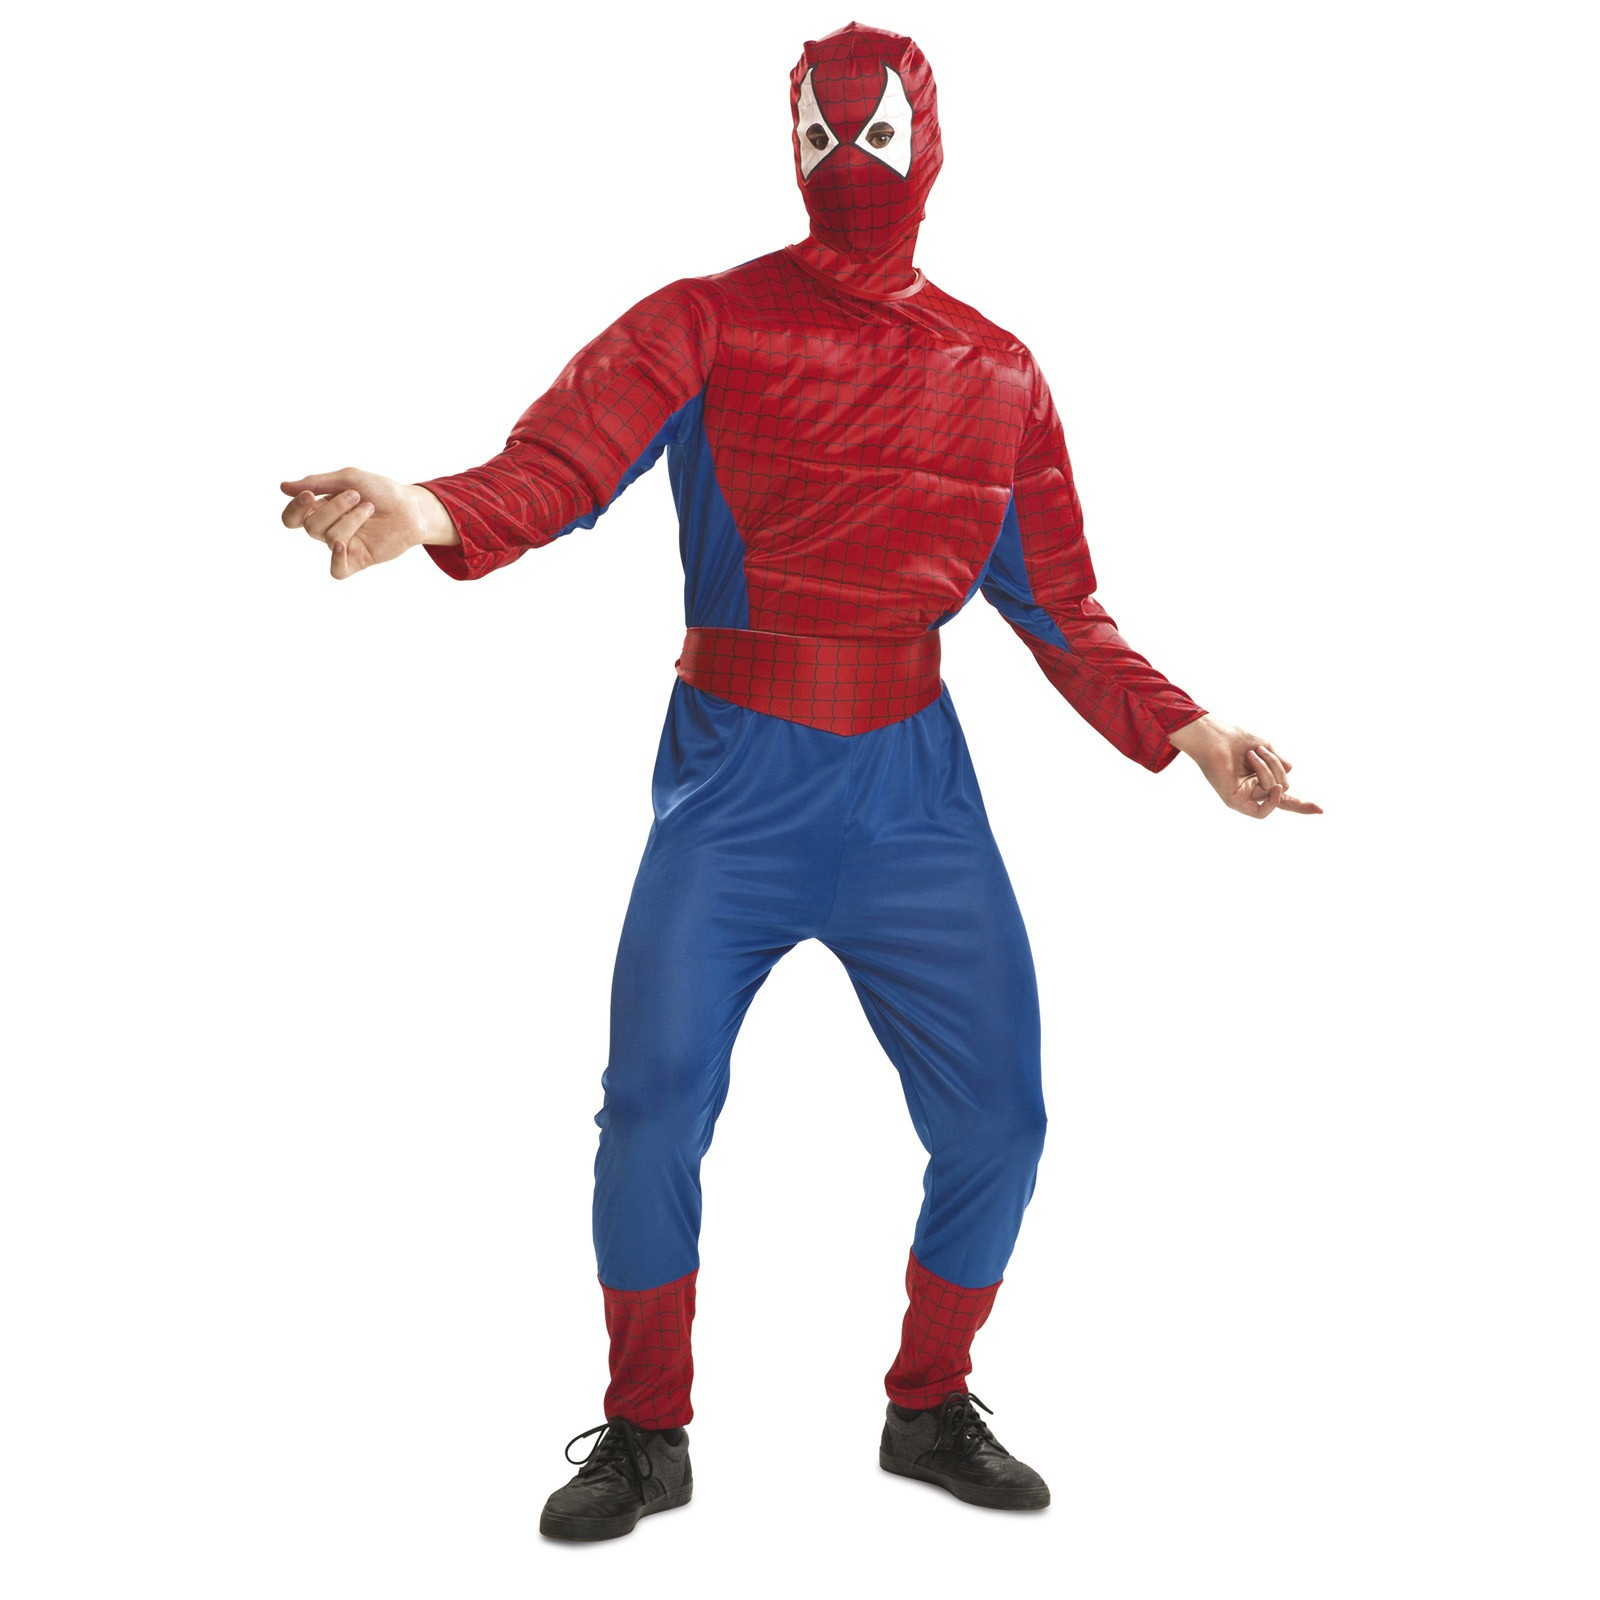 spiderman musculoso hombre - DISFRAZ DE SPIDERMAN MUSCULOSO ADULTO